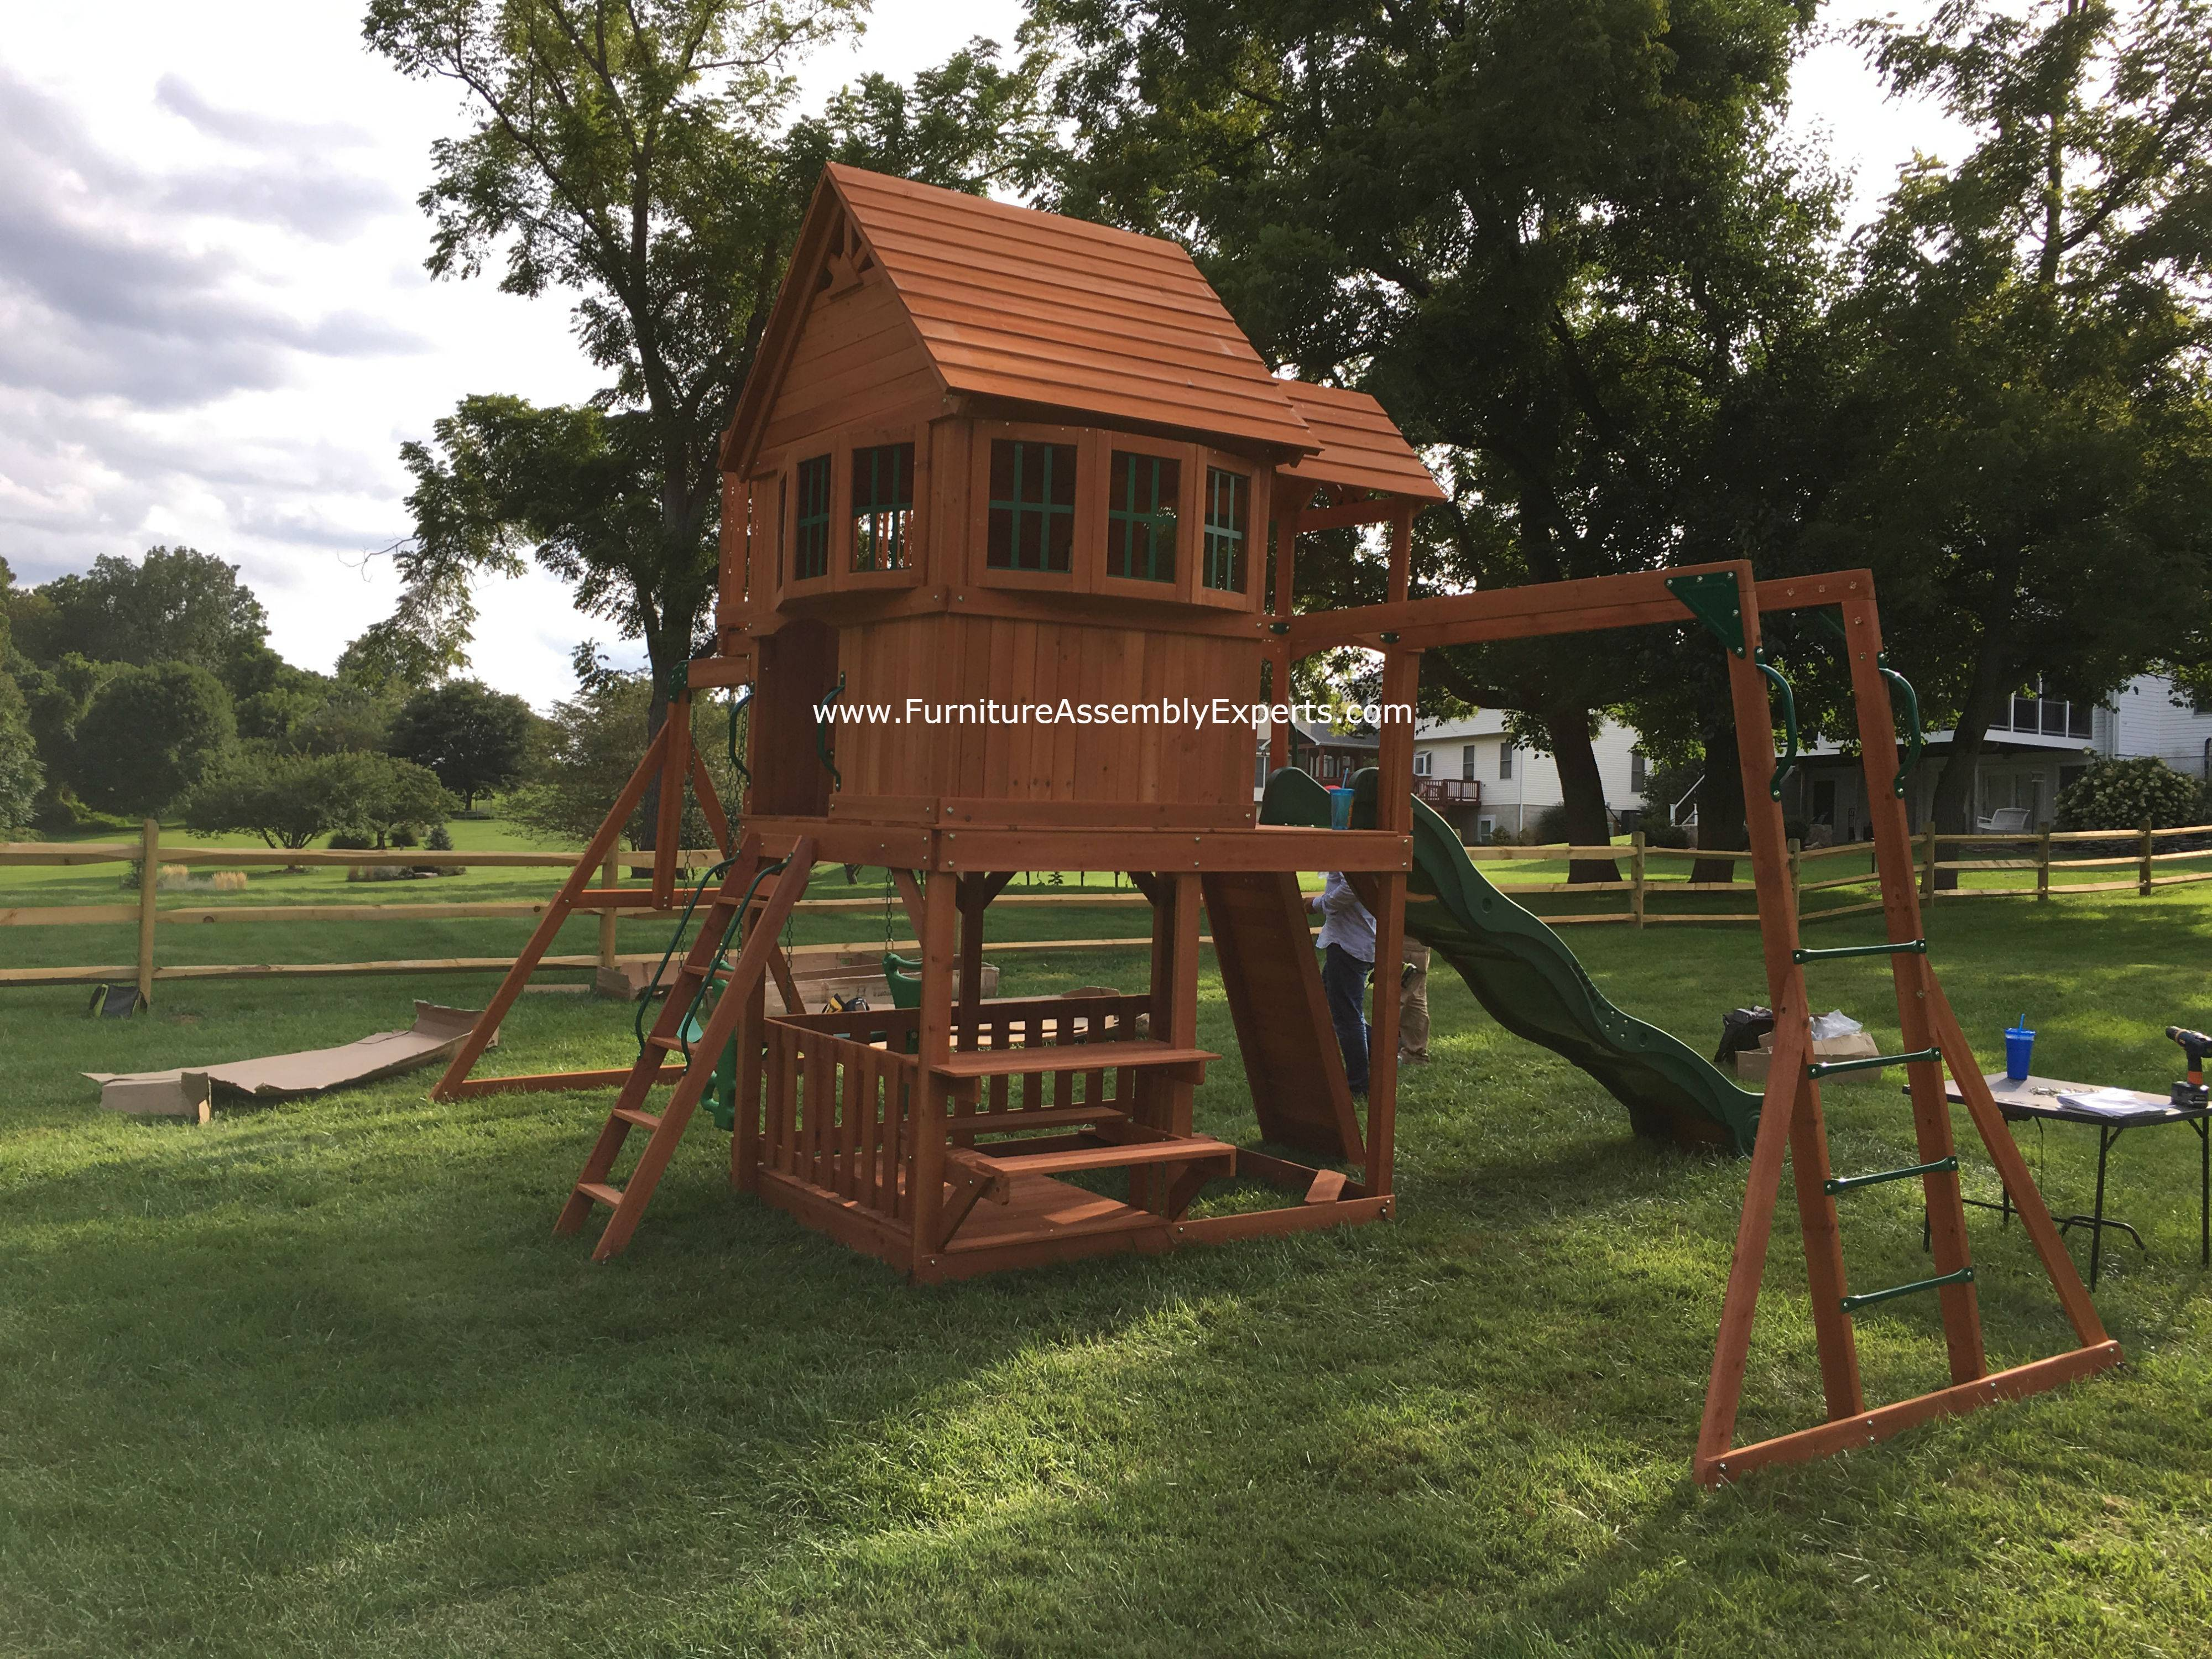 skyfort II swing set installation in edgewater MD